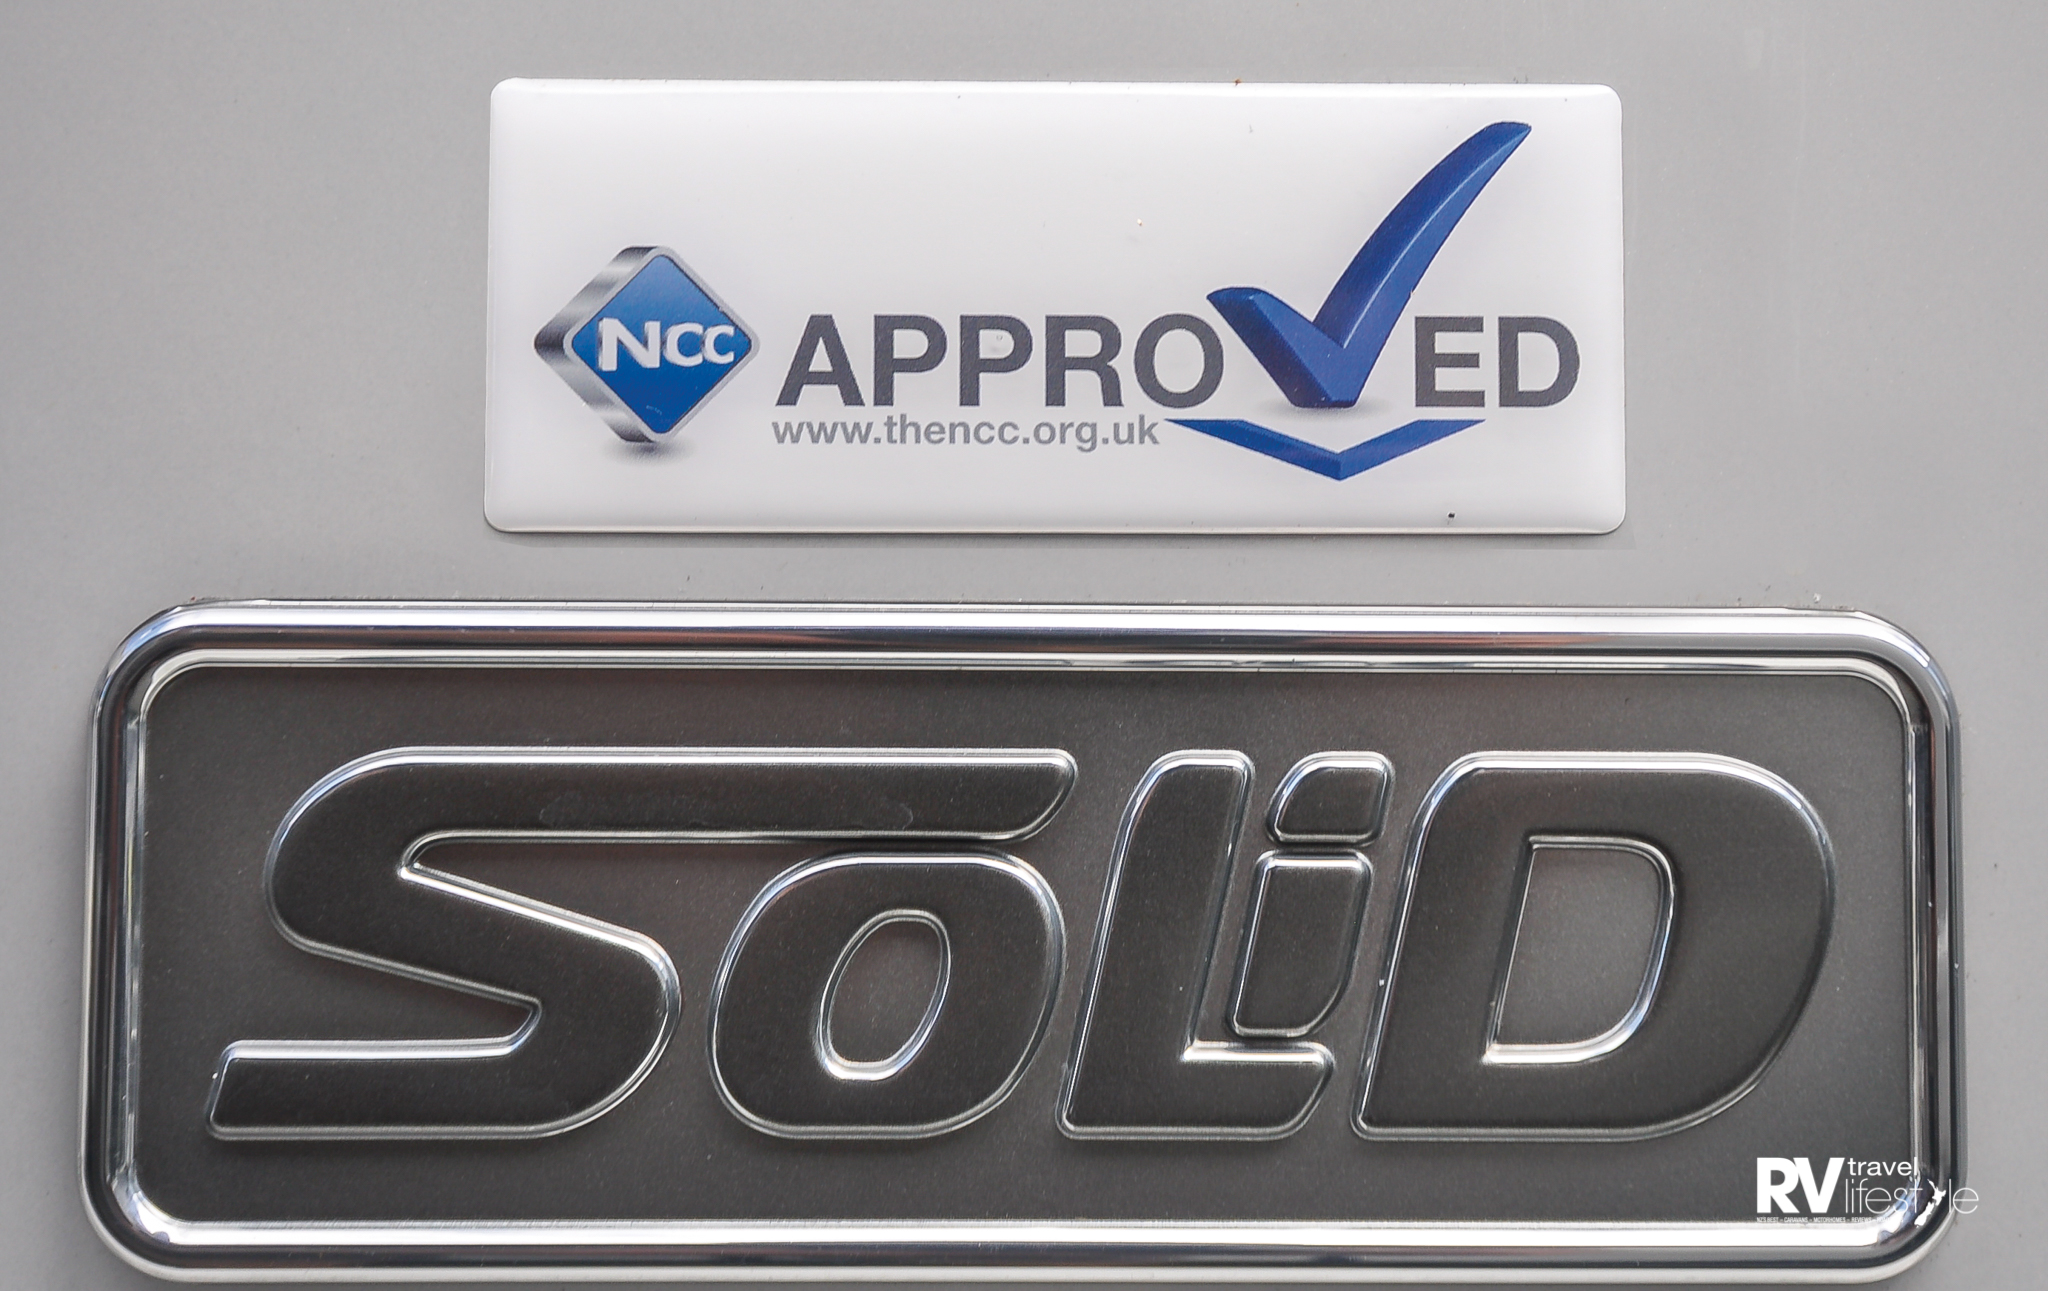 SoLiD is the specialised construction and bonding method name for all Elddis built motorhomes and caravans